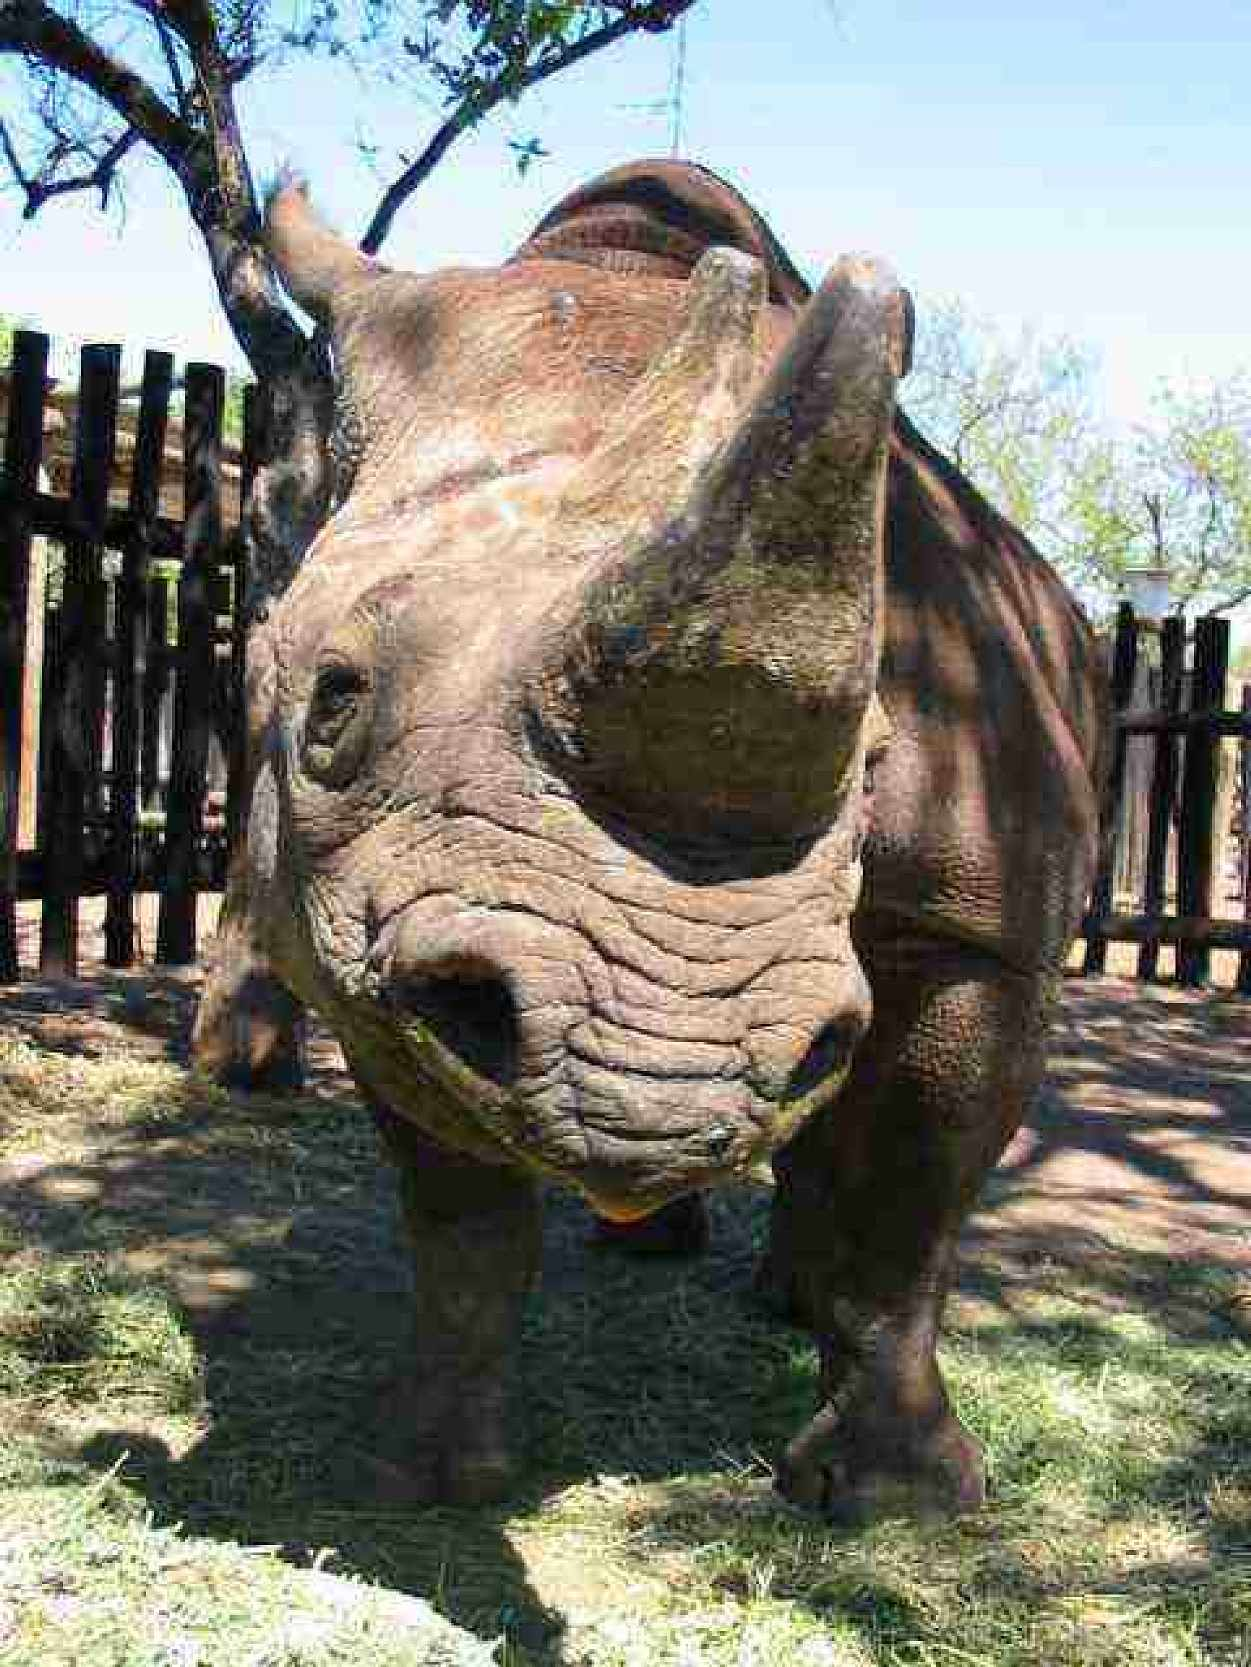 Rhino in boma before release